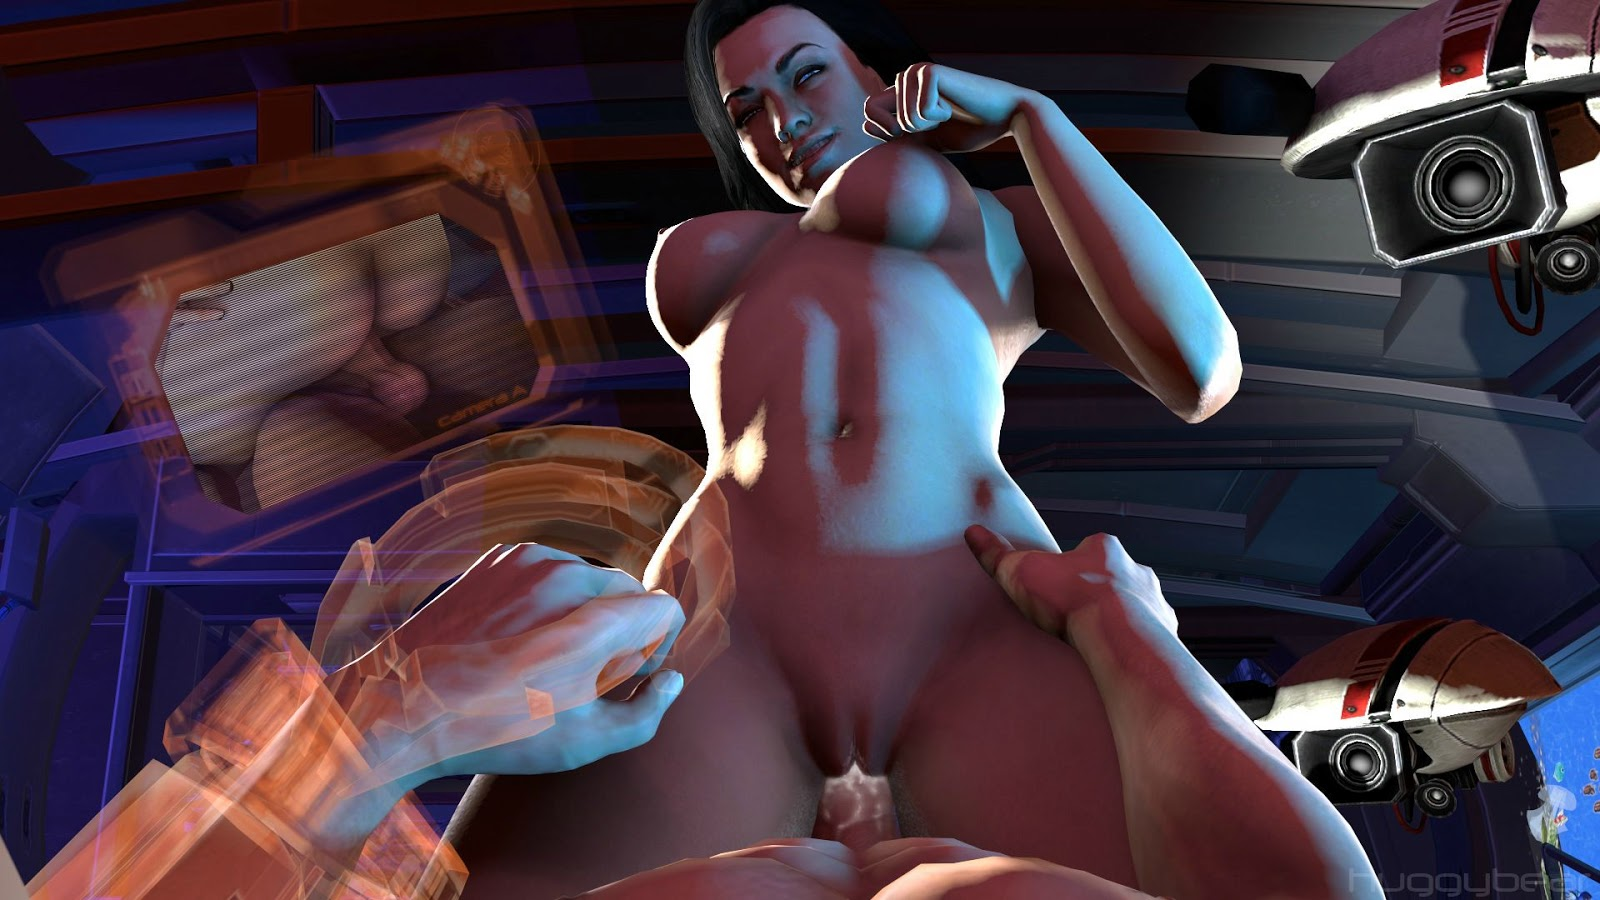 Free hentai mass effect games smut videos